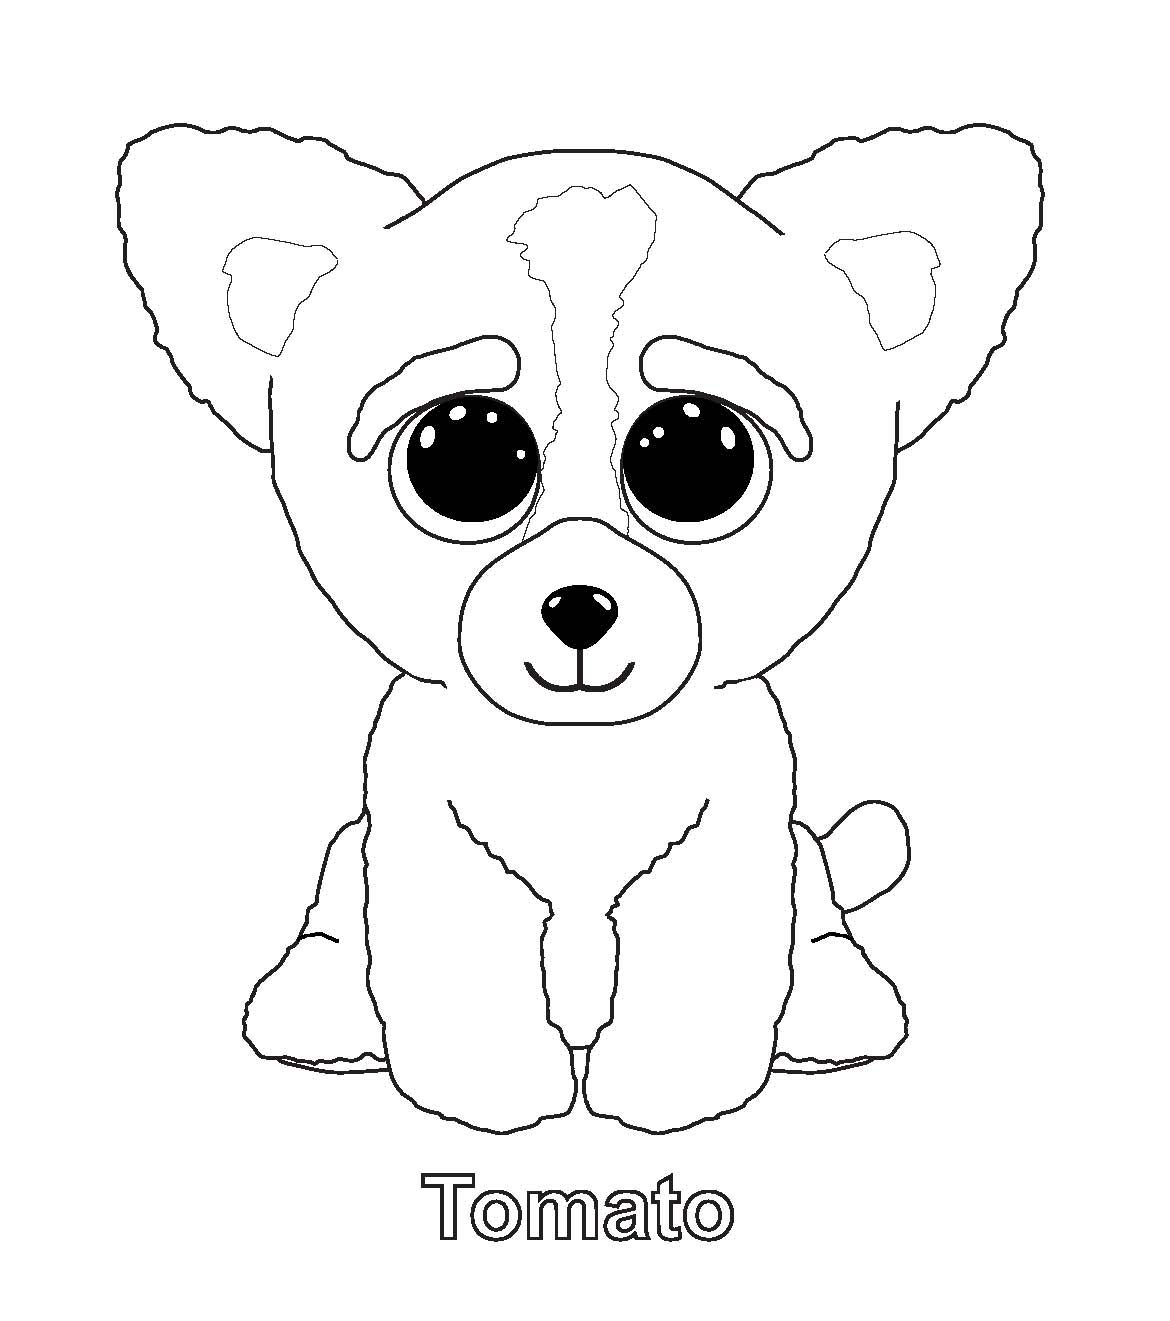 dazzle coloring pages for children - photo#44